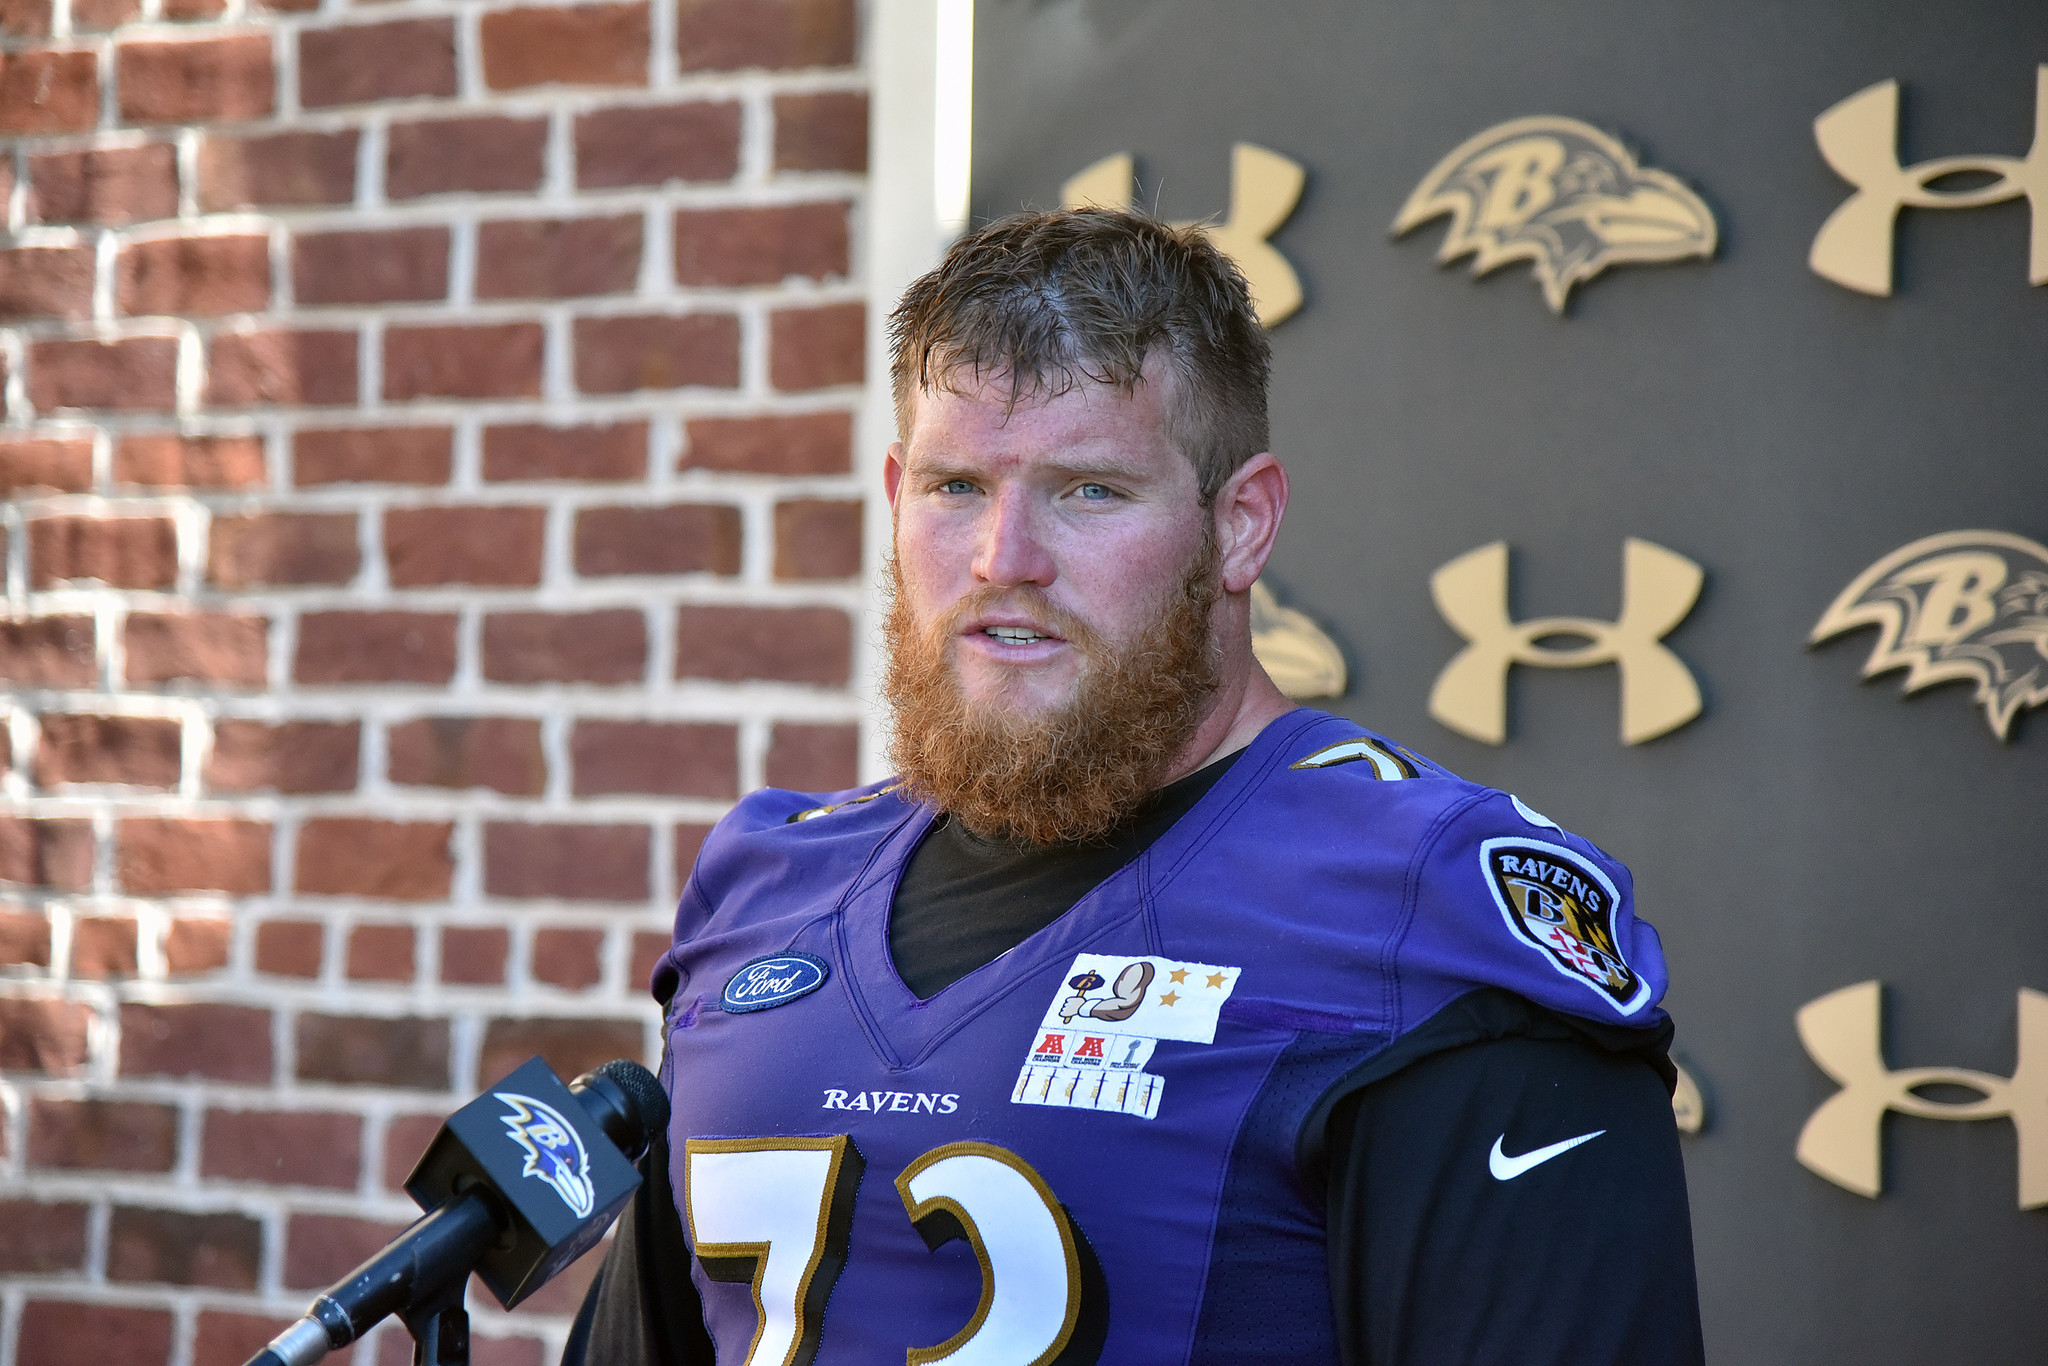 Bal-ravens-guard-marshal-yanda-did-not-suffer-setback-sunday-availability-of-jimmy-smith-and-elvis-dumer-20161121